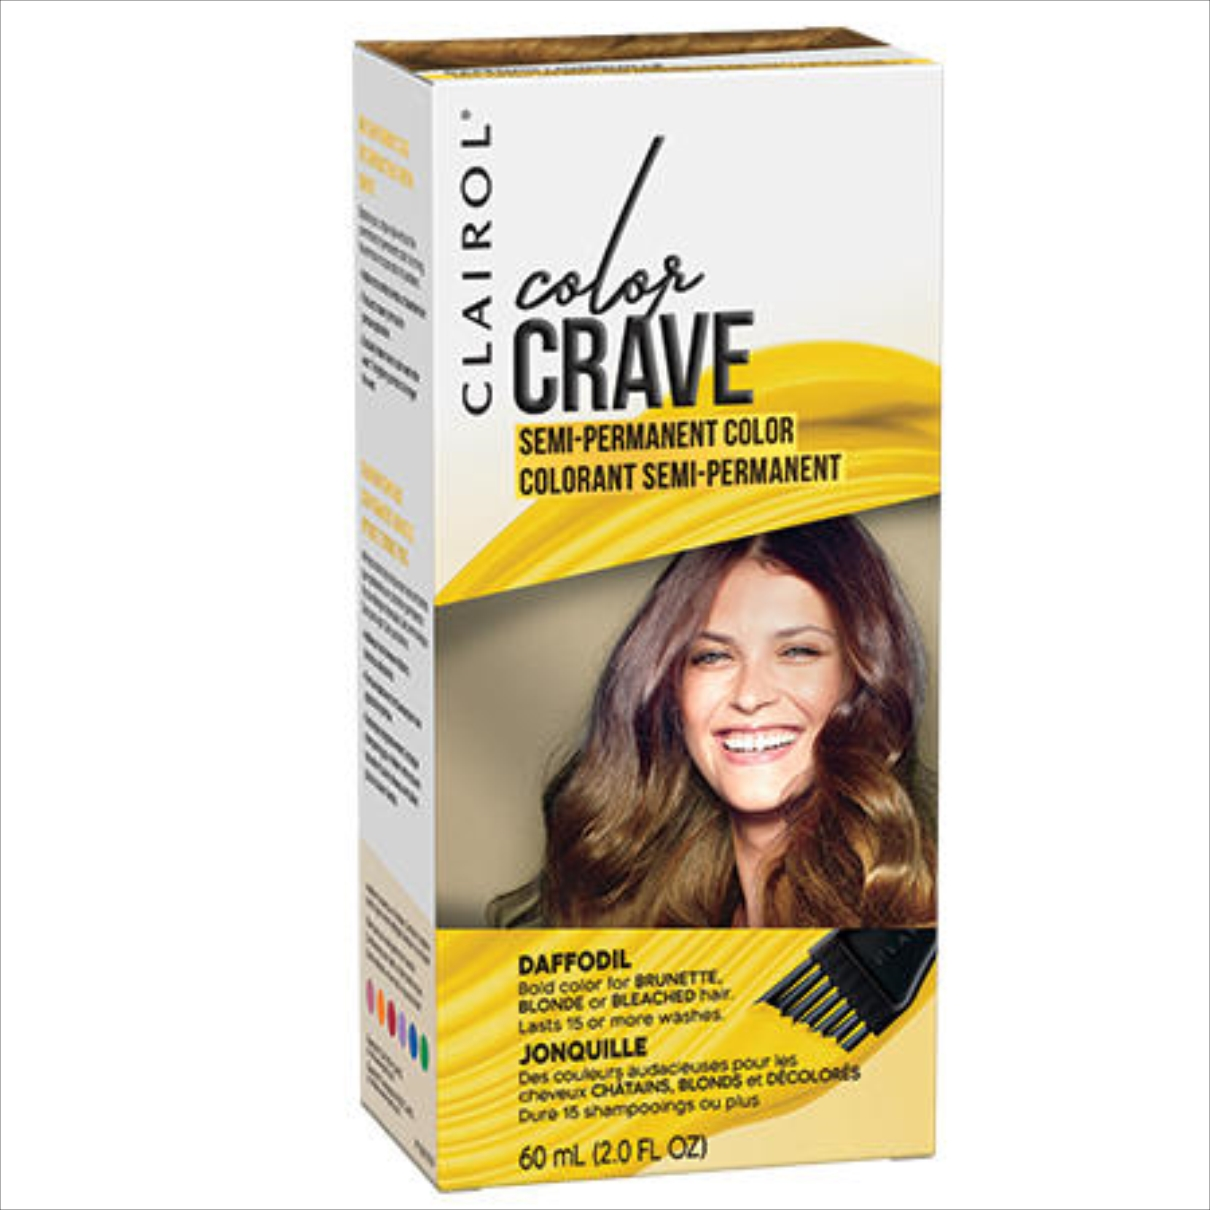 Semi Permanent Hair Color Clairol